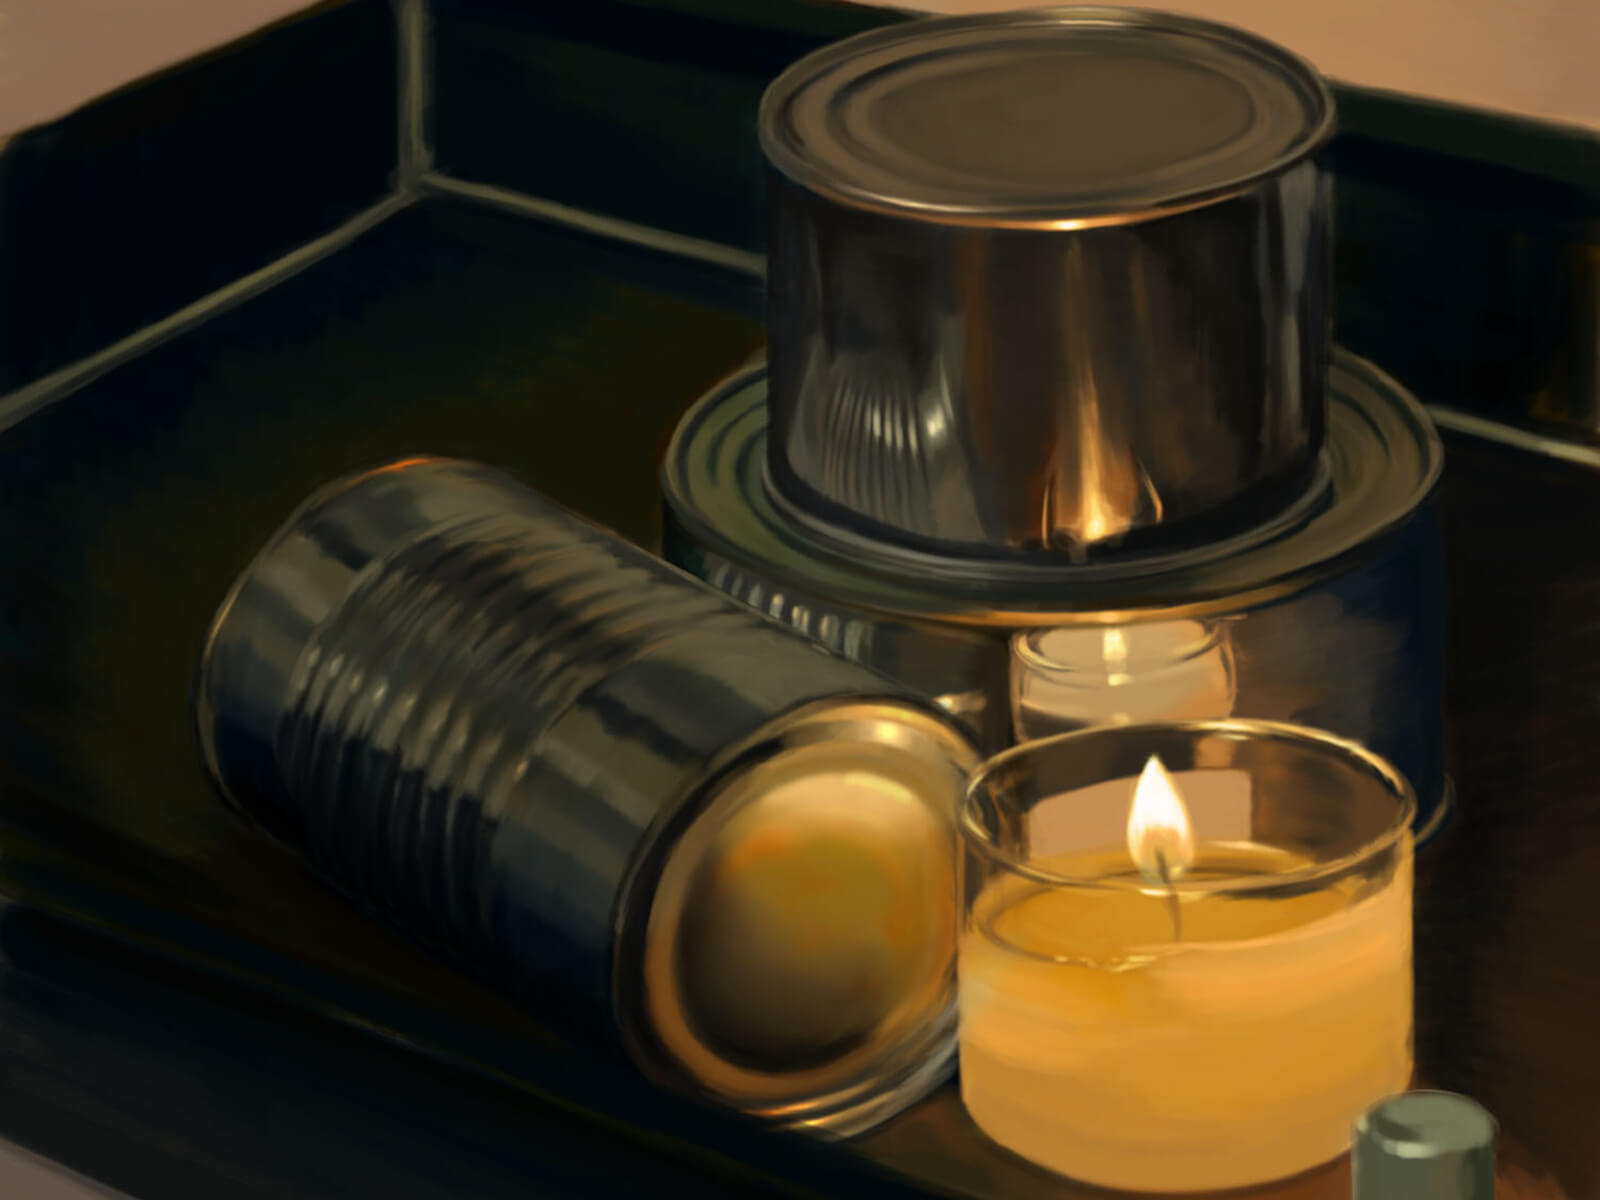 still-life traditional painting of 3 unlabeled aluminum cans and a lit candle